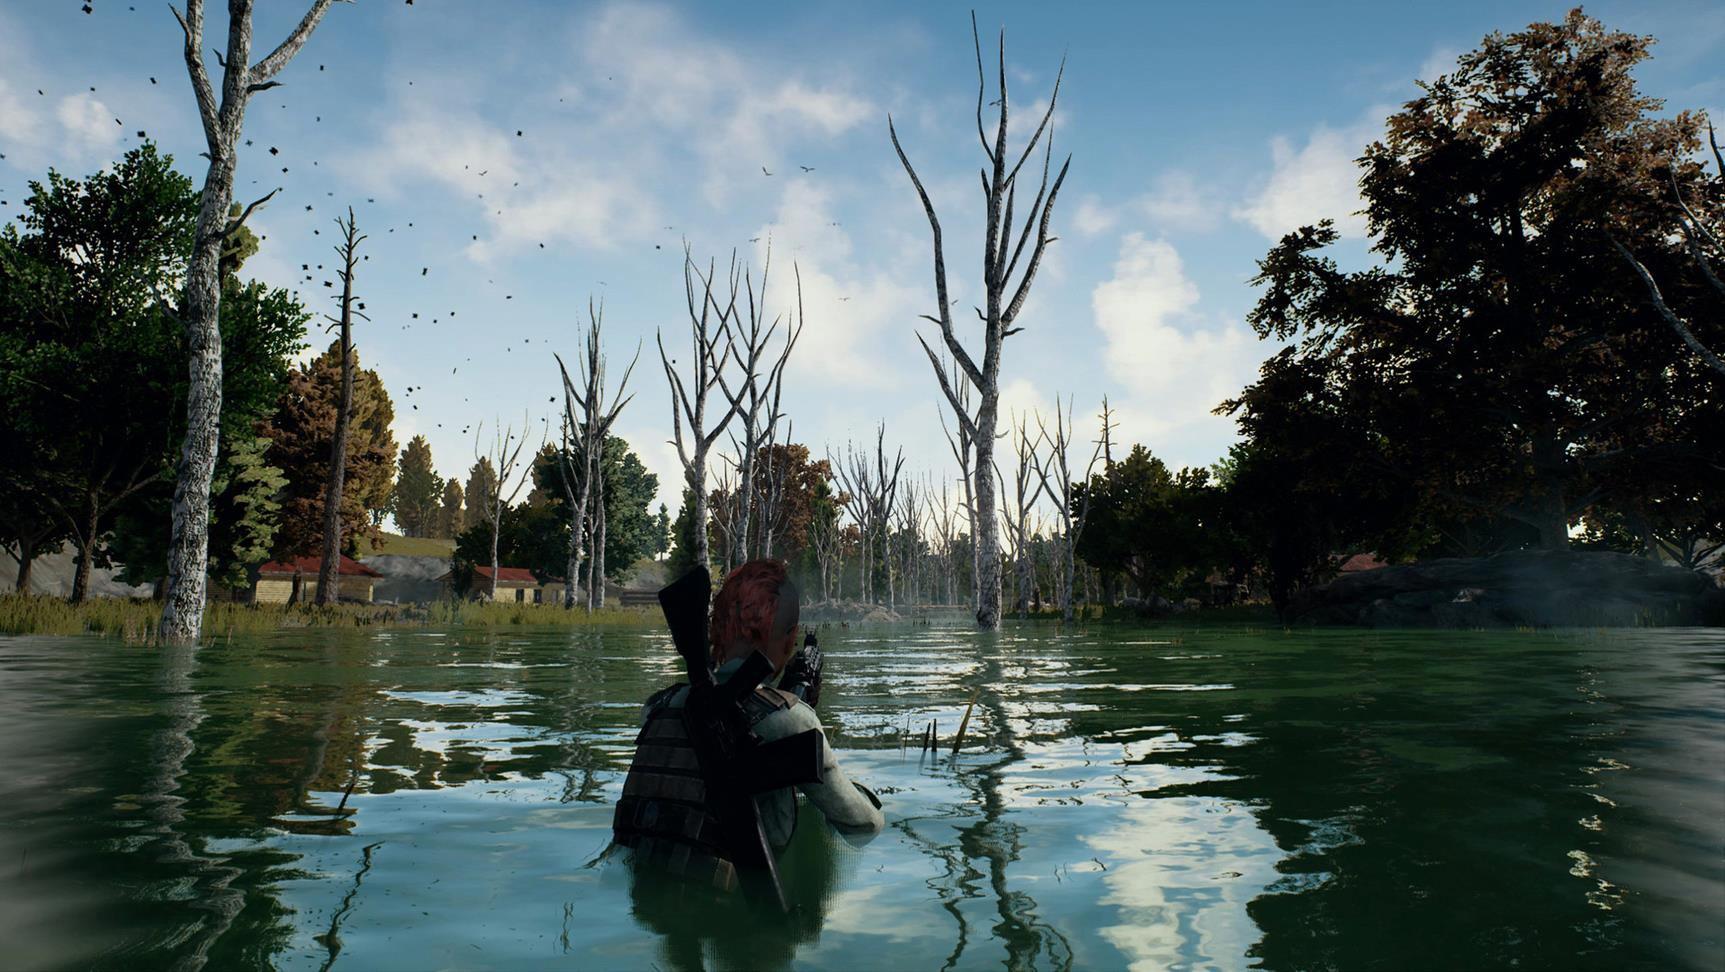 This week's PlayerUnknown's Battlegrounds patch decreases item spawn level on starting island, more